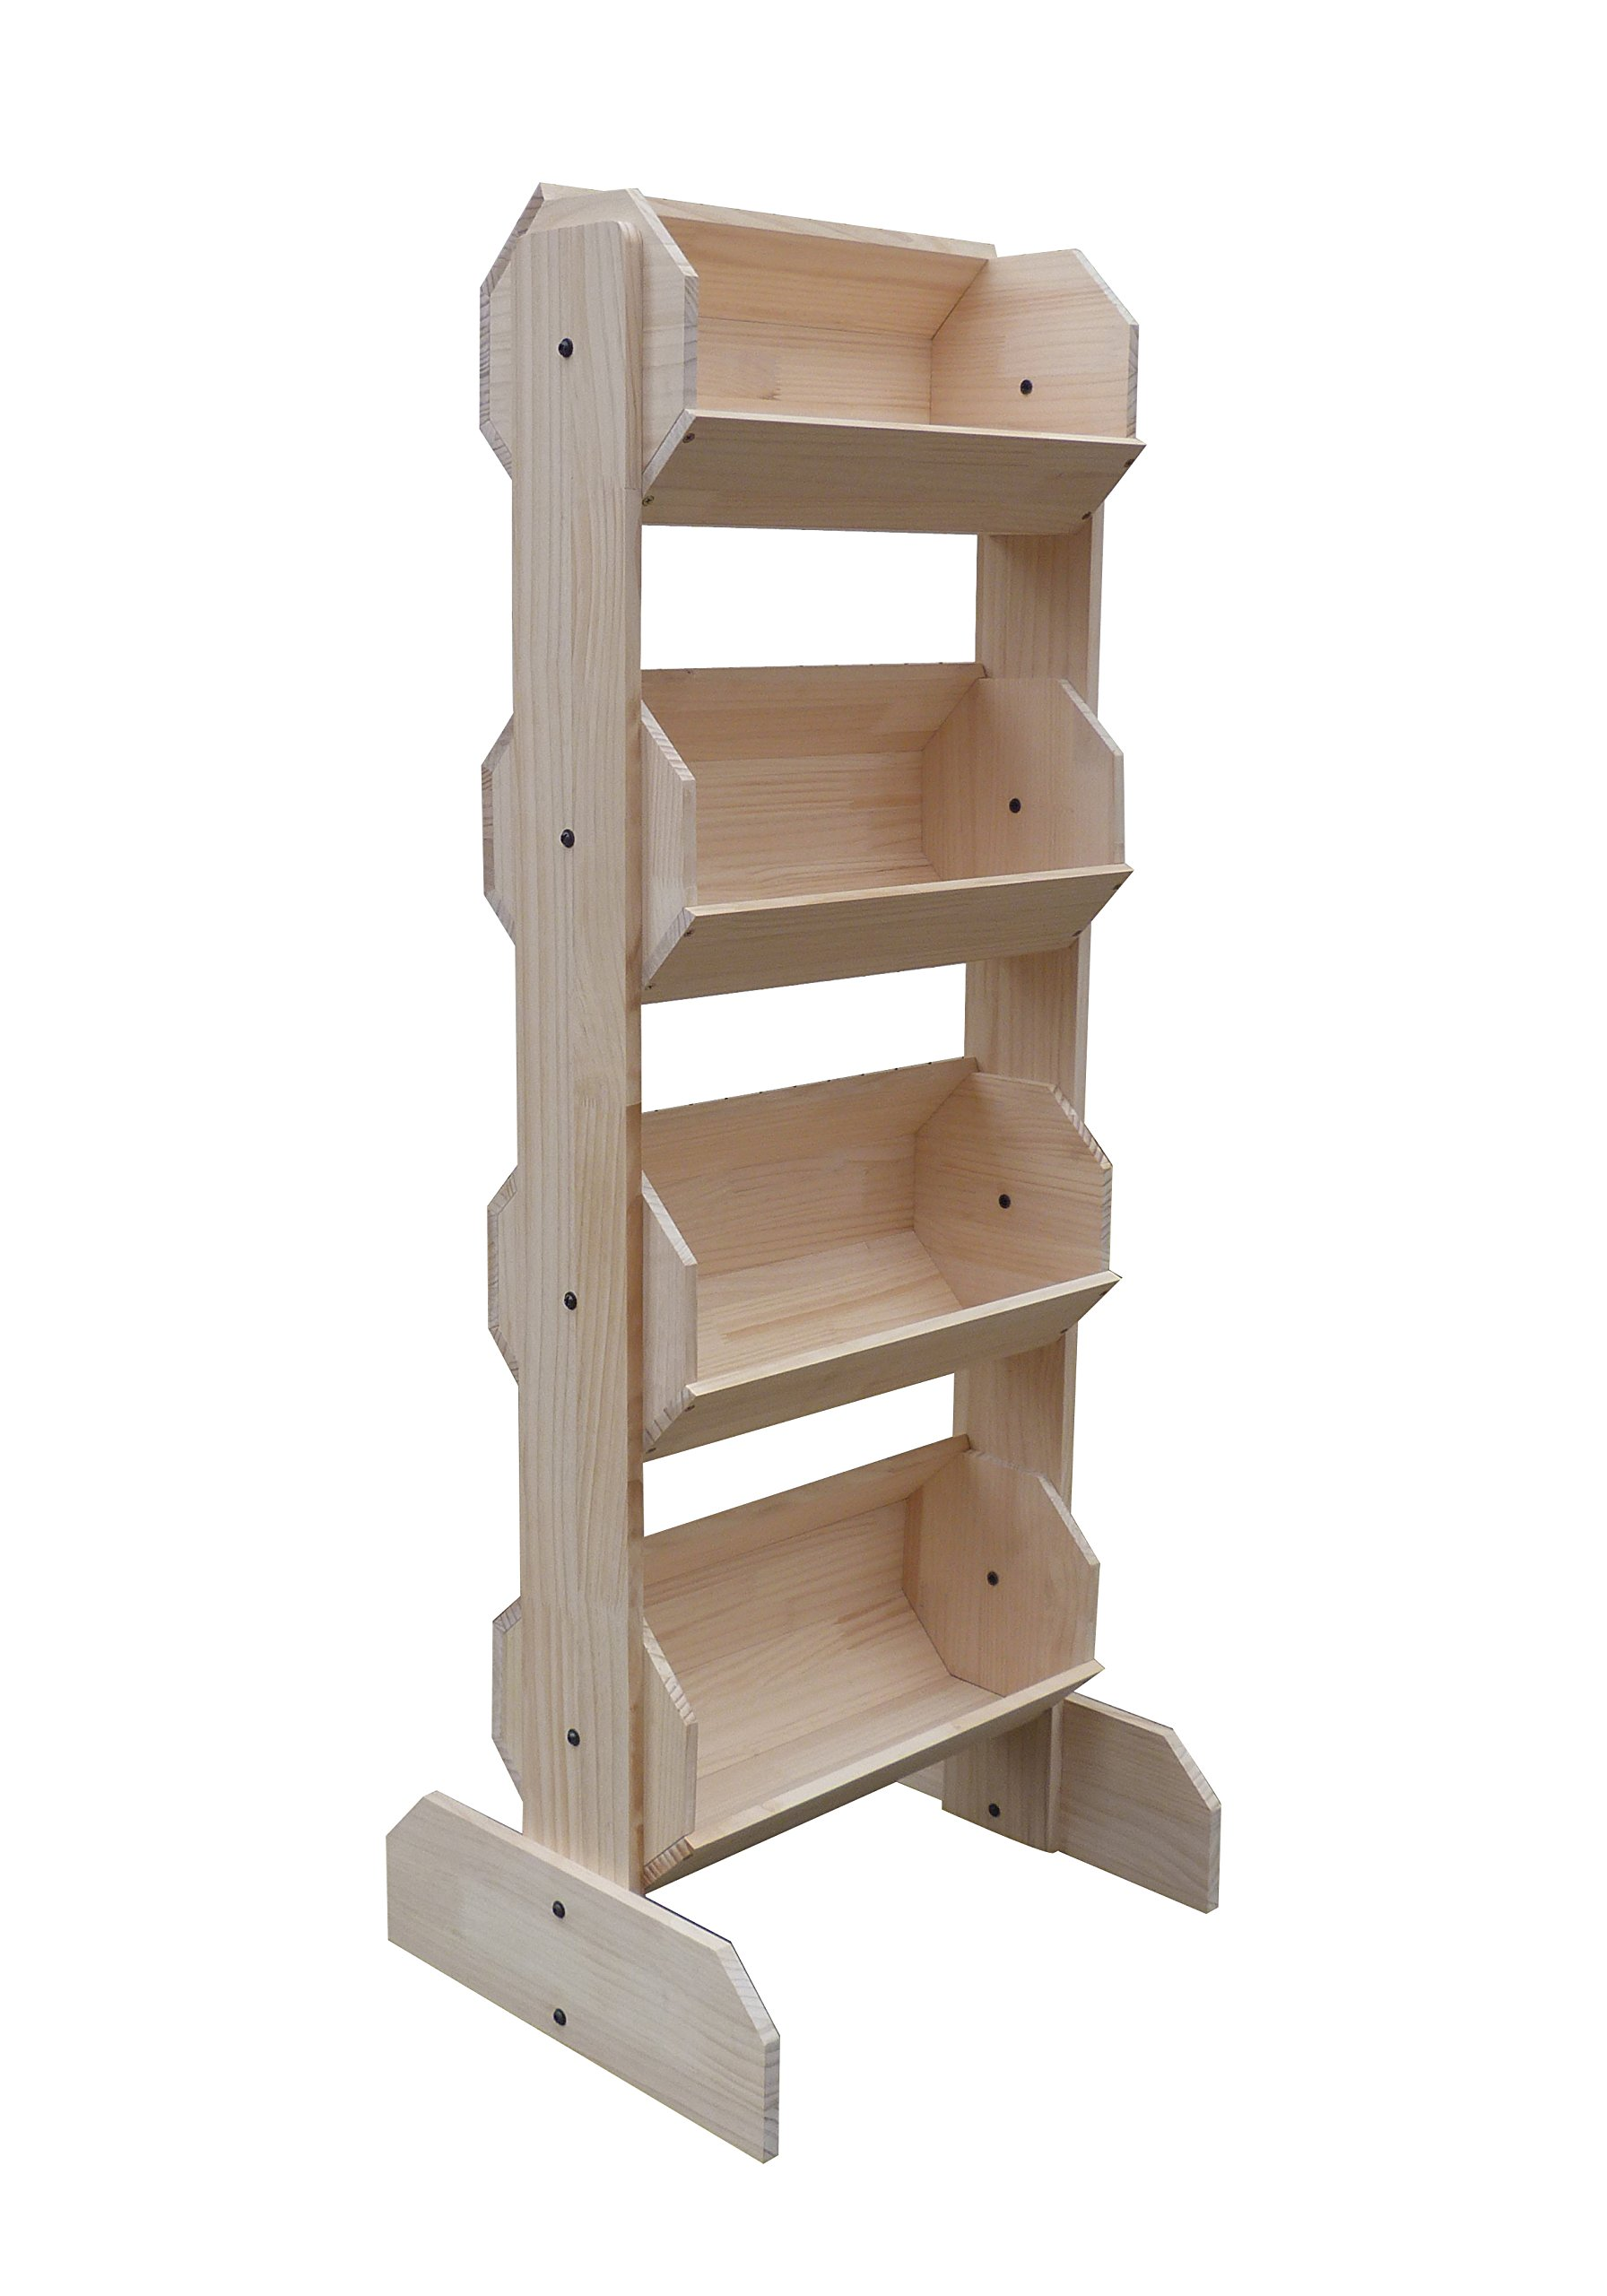 FixtureDisplays 21.0'' x 53.0'' x 17.0'' Tiered Wooden Display, Floorstanding, 4 Bins - Natural Pine 19407